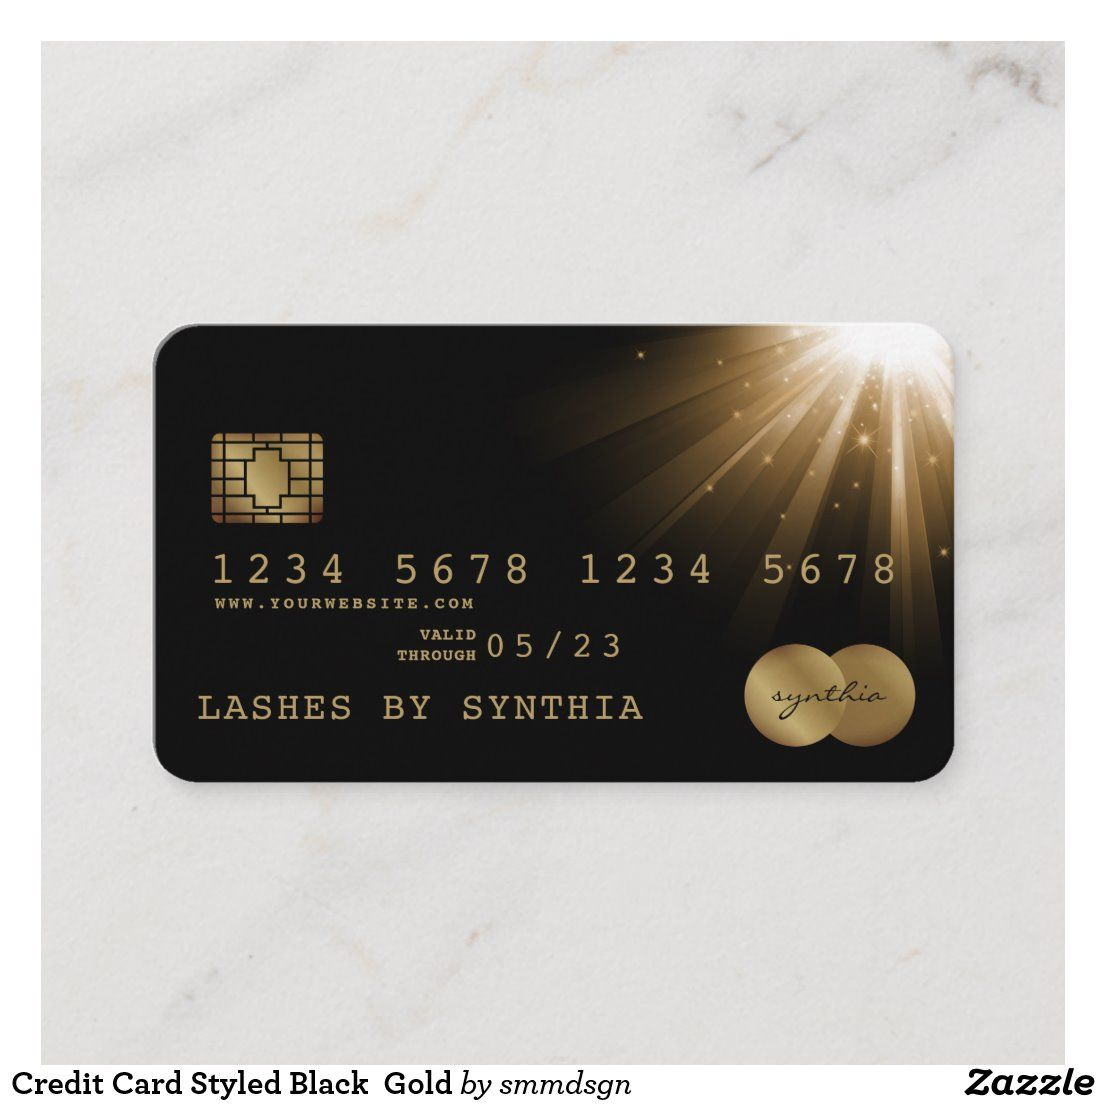 Credit Card Styled Black Gold Zazzle Com In 2021 Debit Card Design Credit Card Gold Credit Card